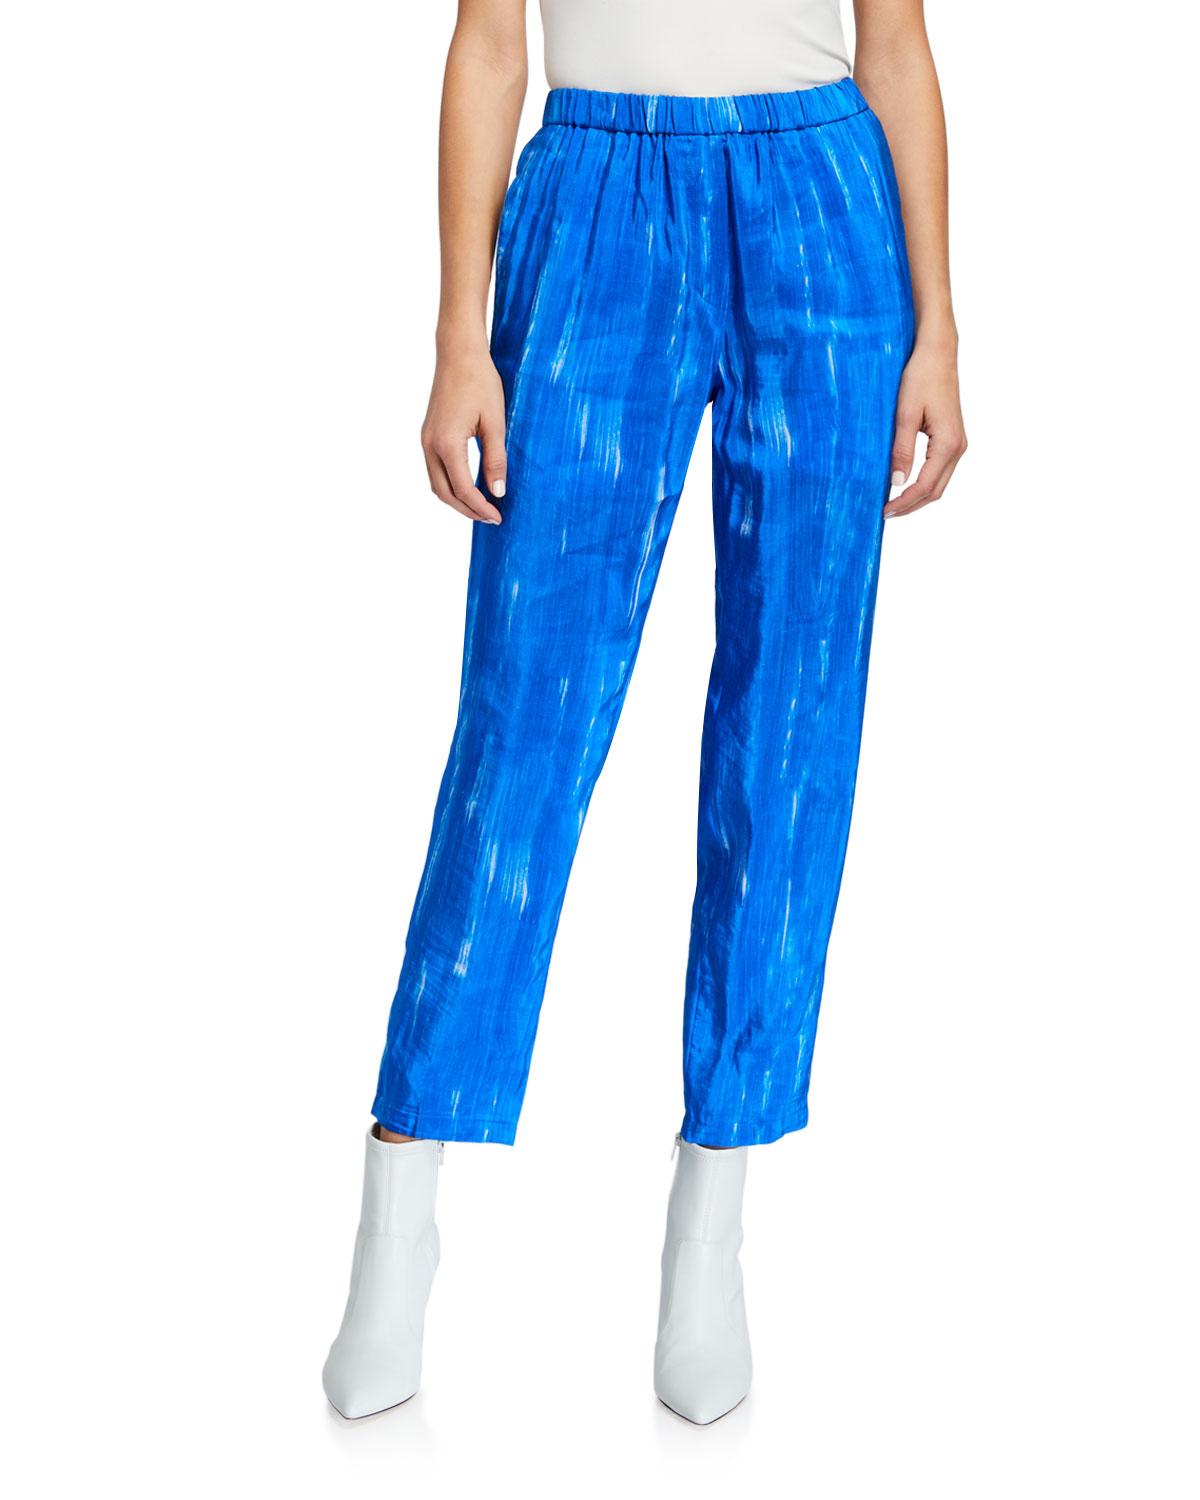 Christian Wijnants Brushstroke Print Elastic Waistband Trousers